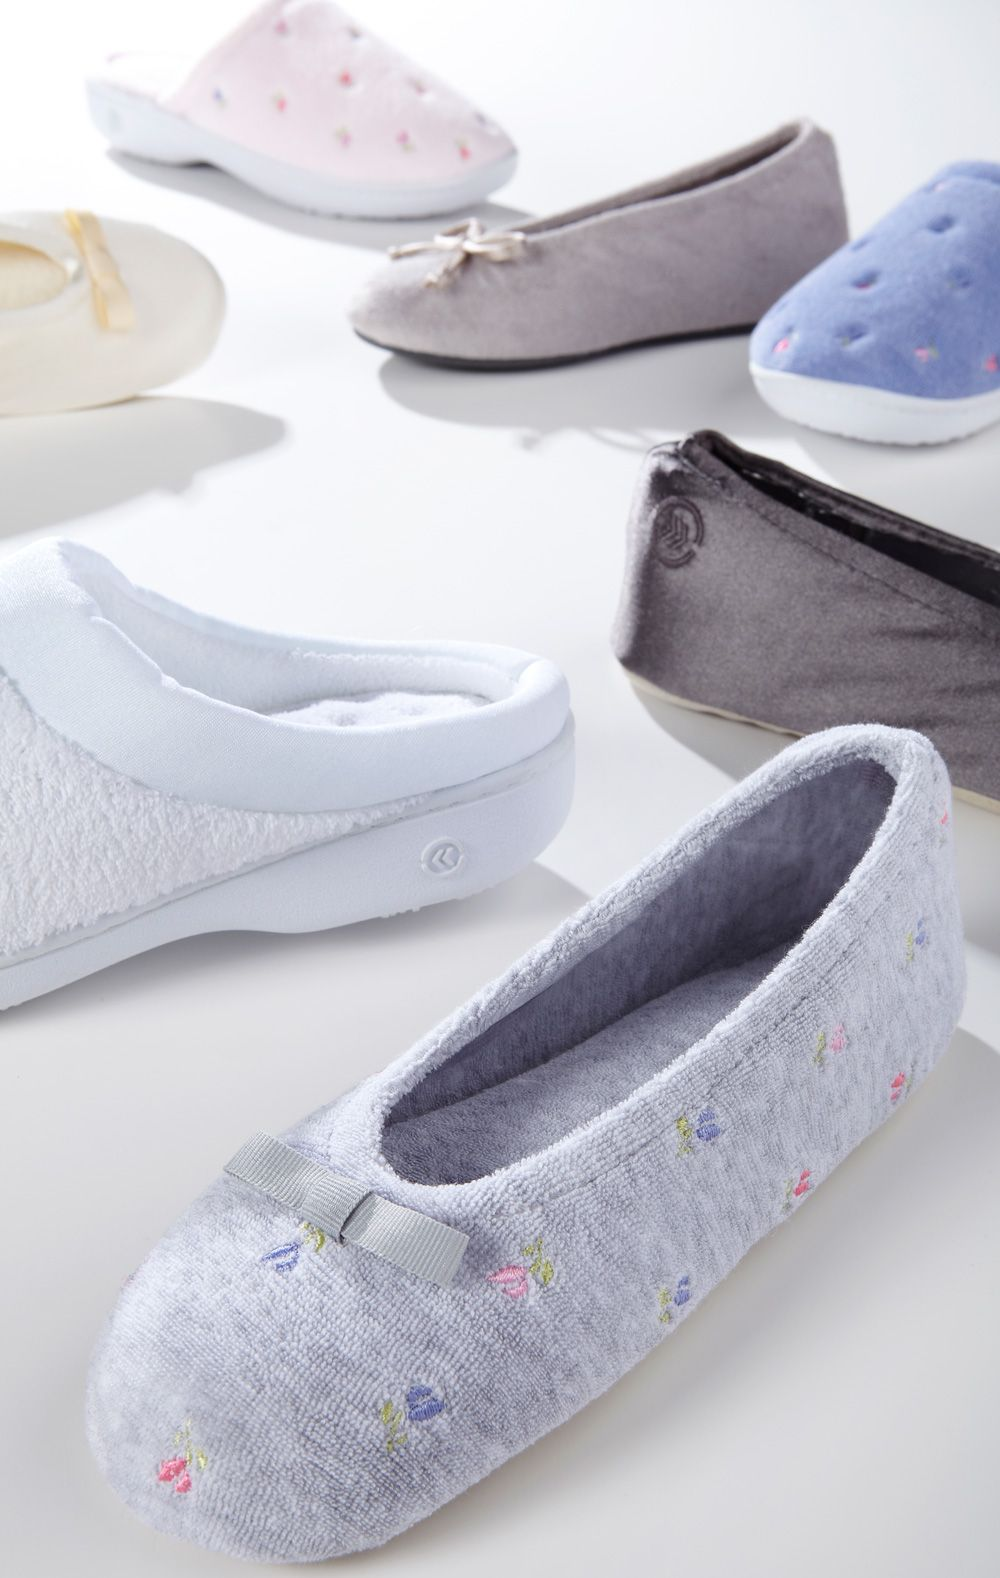 Step into immediate comfort and effortless style. Isotoner slippers are constructed with durable fabrics and classic silhouettes that you'll look forward to wearing. Styles include our newest technologies for lasting comfort. #KeepersofHandsandFeet